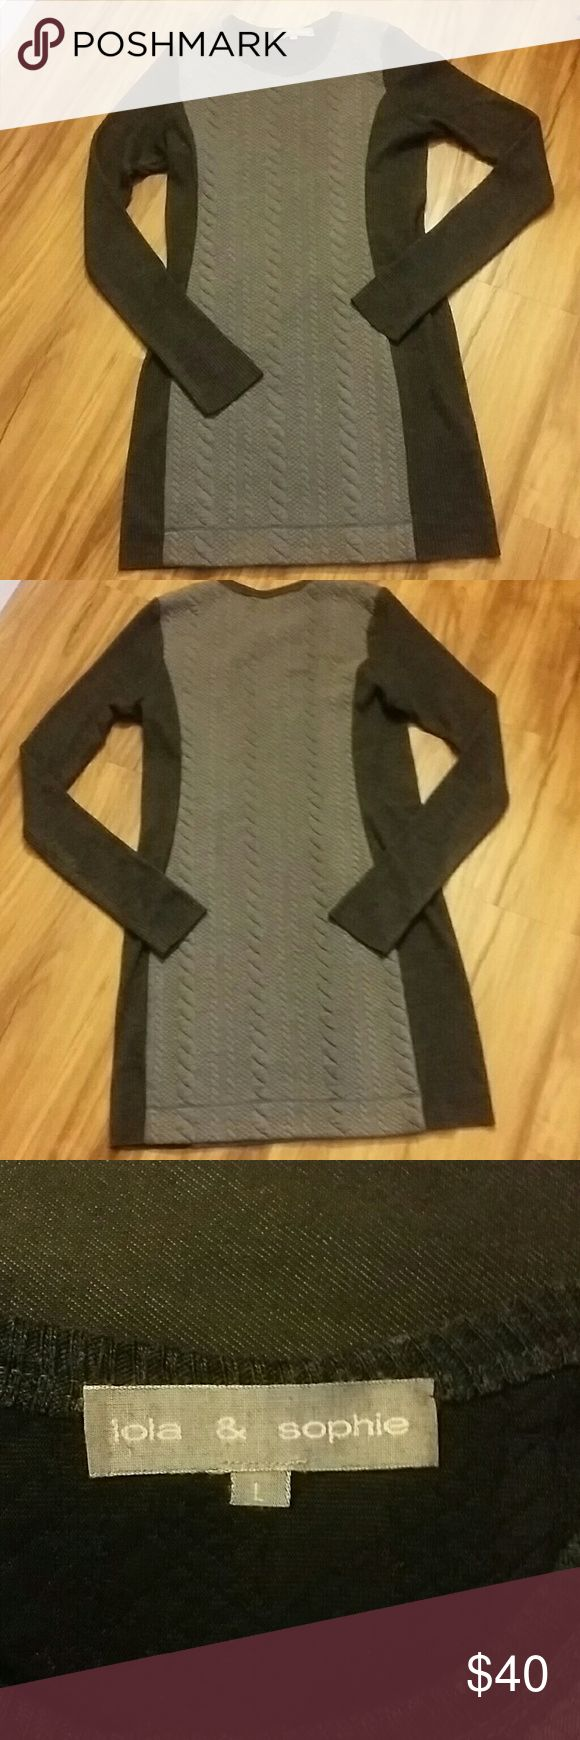 """Adorable sweater dress from Lola and Sophie This is an adorable sweater dress in excellent condition from the high end boutique in New York Lola and Sophie. Long sleeve sweater dress is black and grey. Even has thumb holes in the sleeves. Measures 35"""" from shoulder to bottom. Please see pic 4 for material info. Lola and Sophie Dresses Midi"""